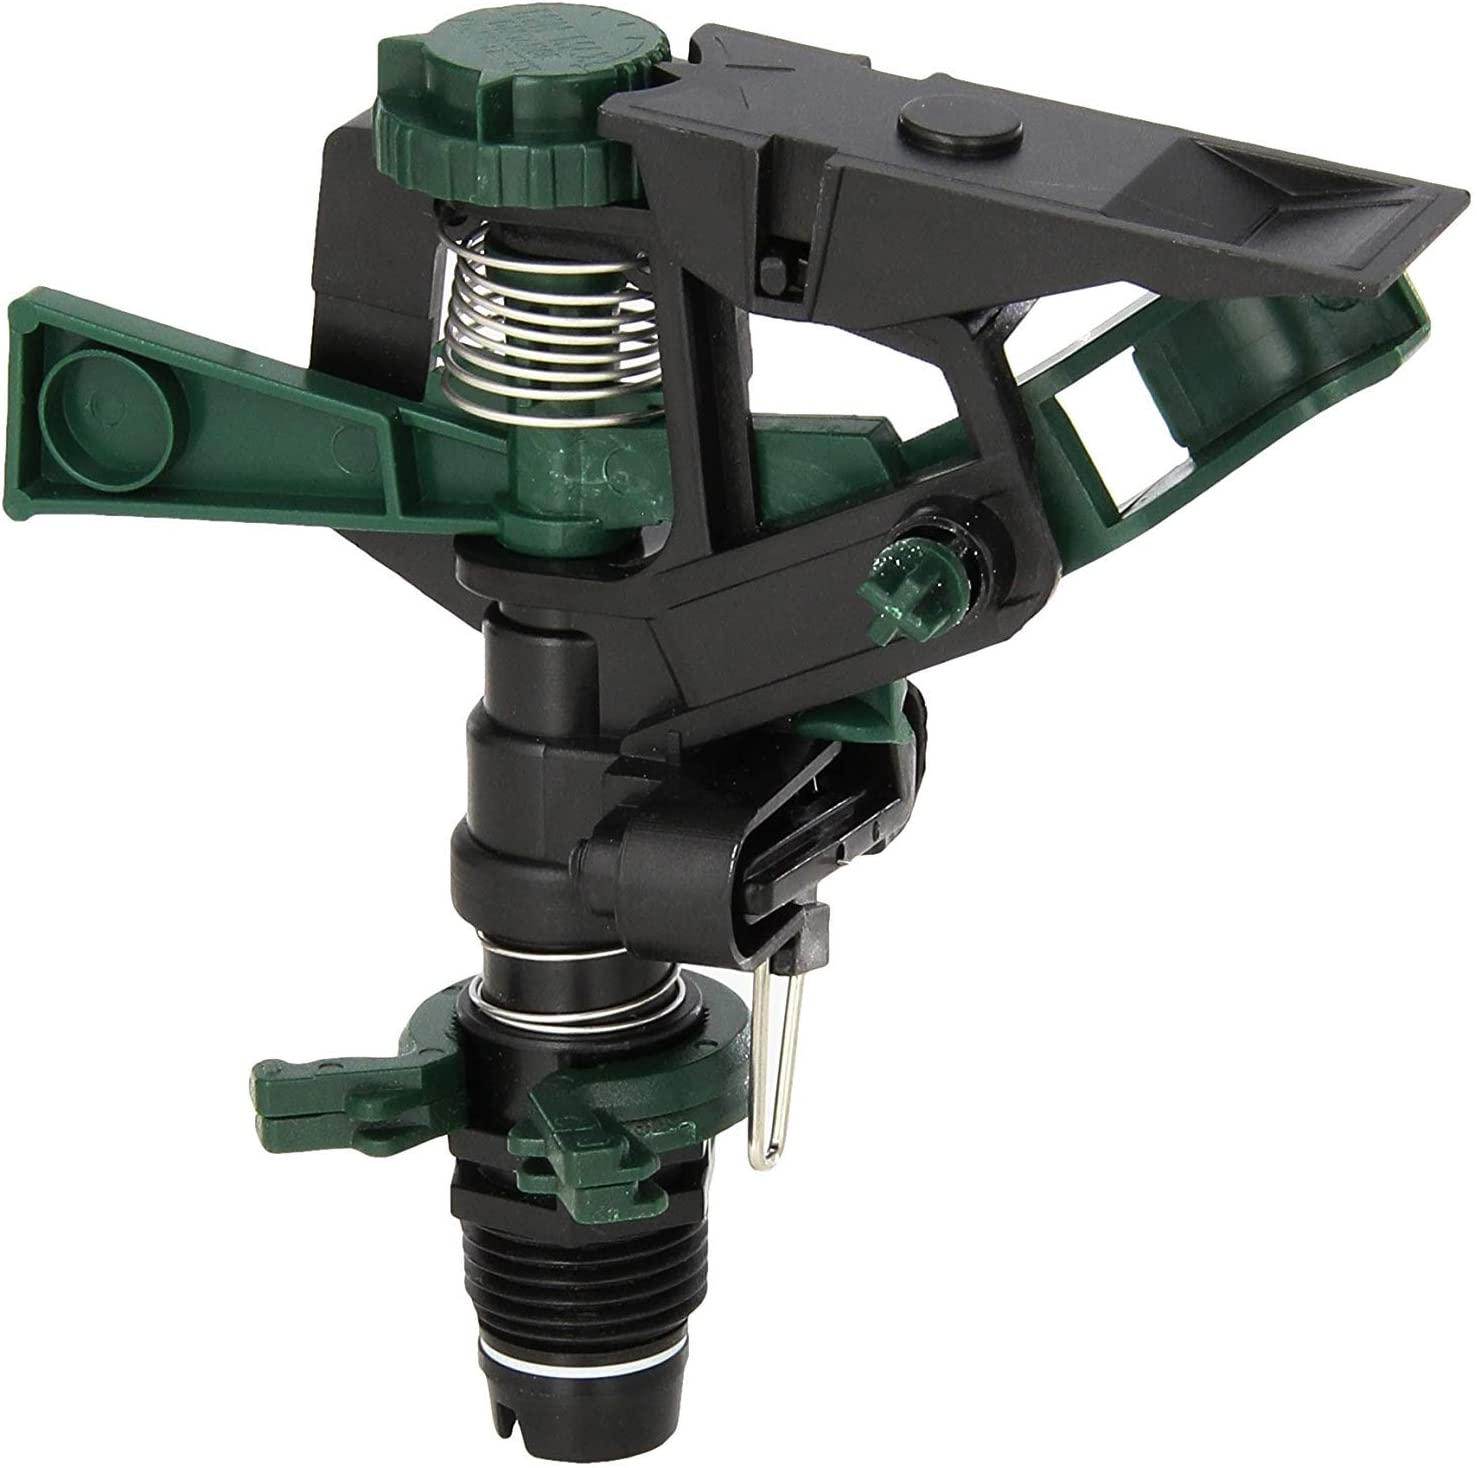 Orbit 10 Pack 1 2 Inch Plastic Lawn Head Impact Sprinkler Direct Popular brand in the world sale of manufacturer